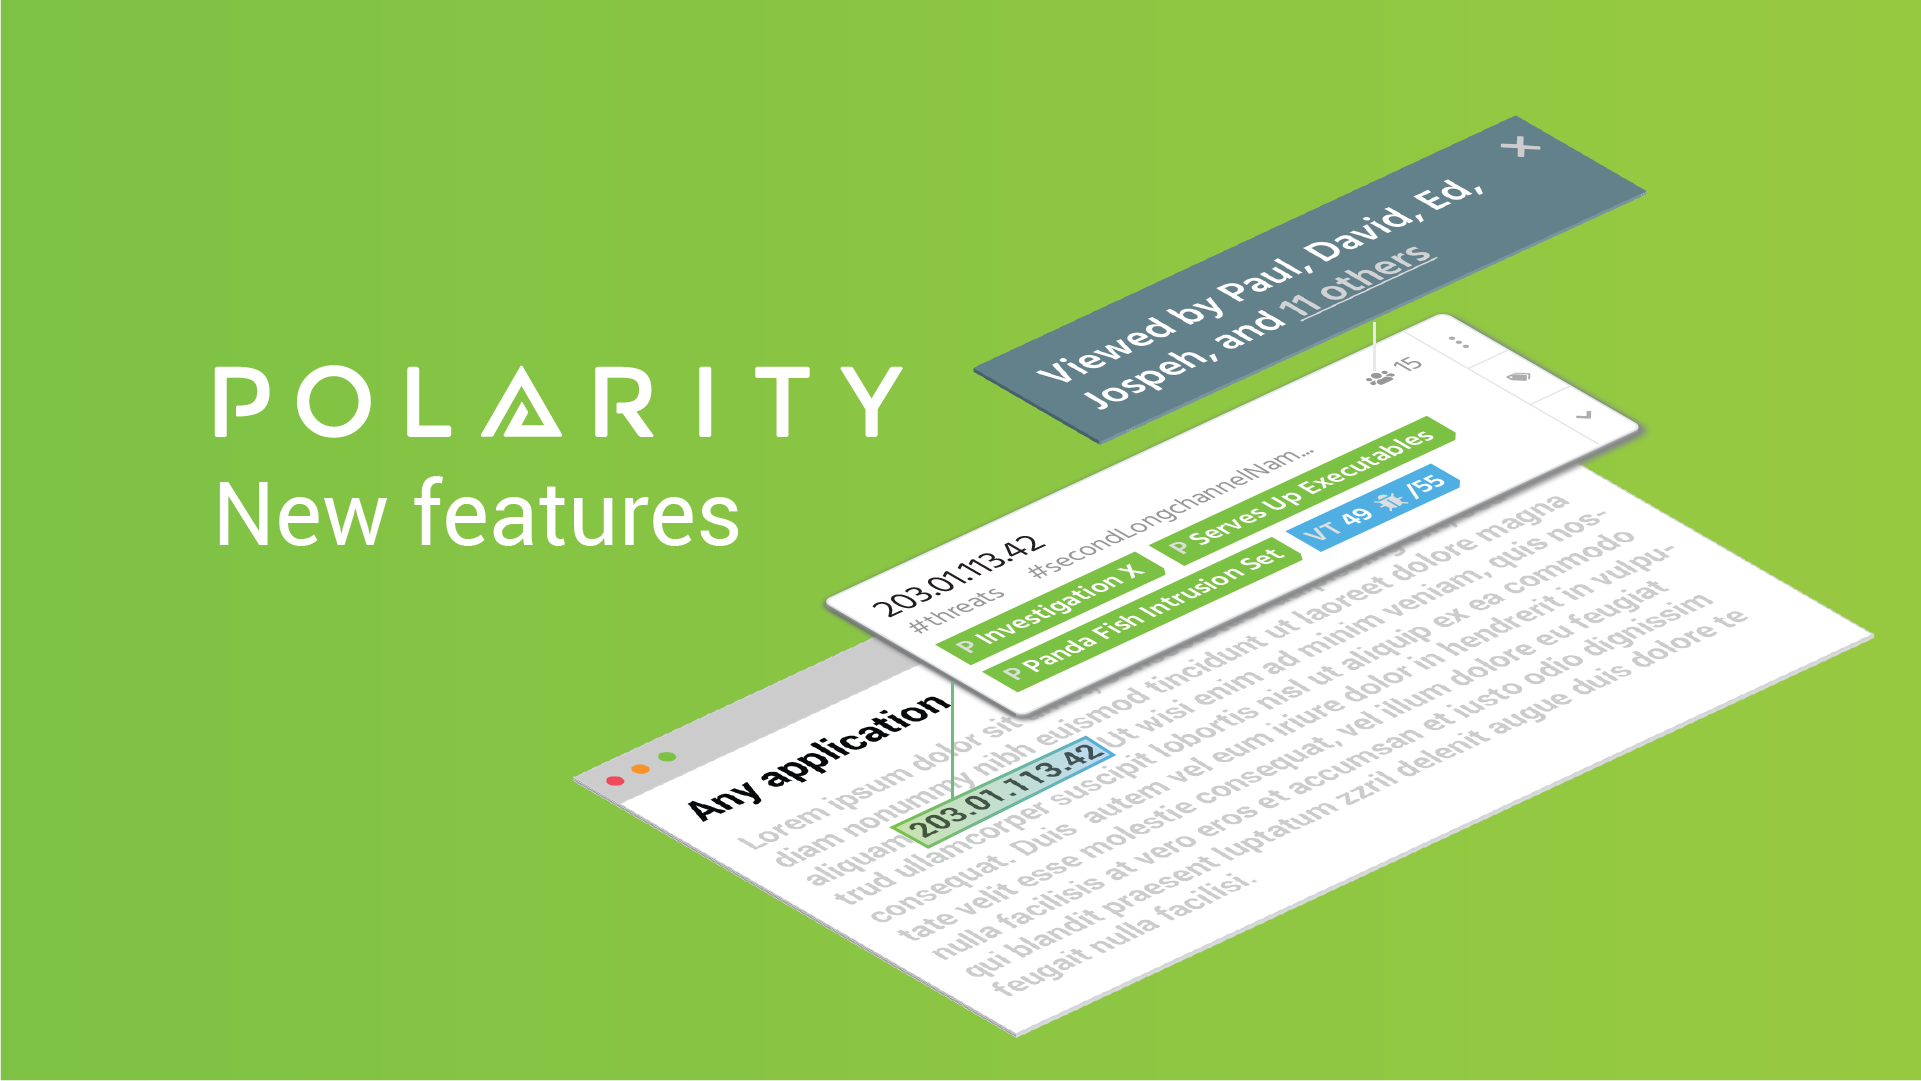 The New Polarity Update Just Made Your Team That Much More Efficient cover image